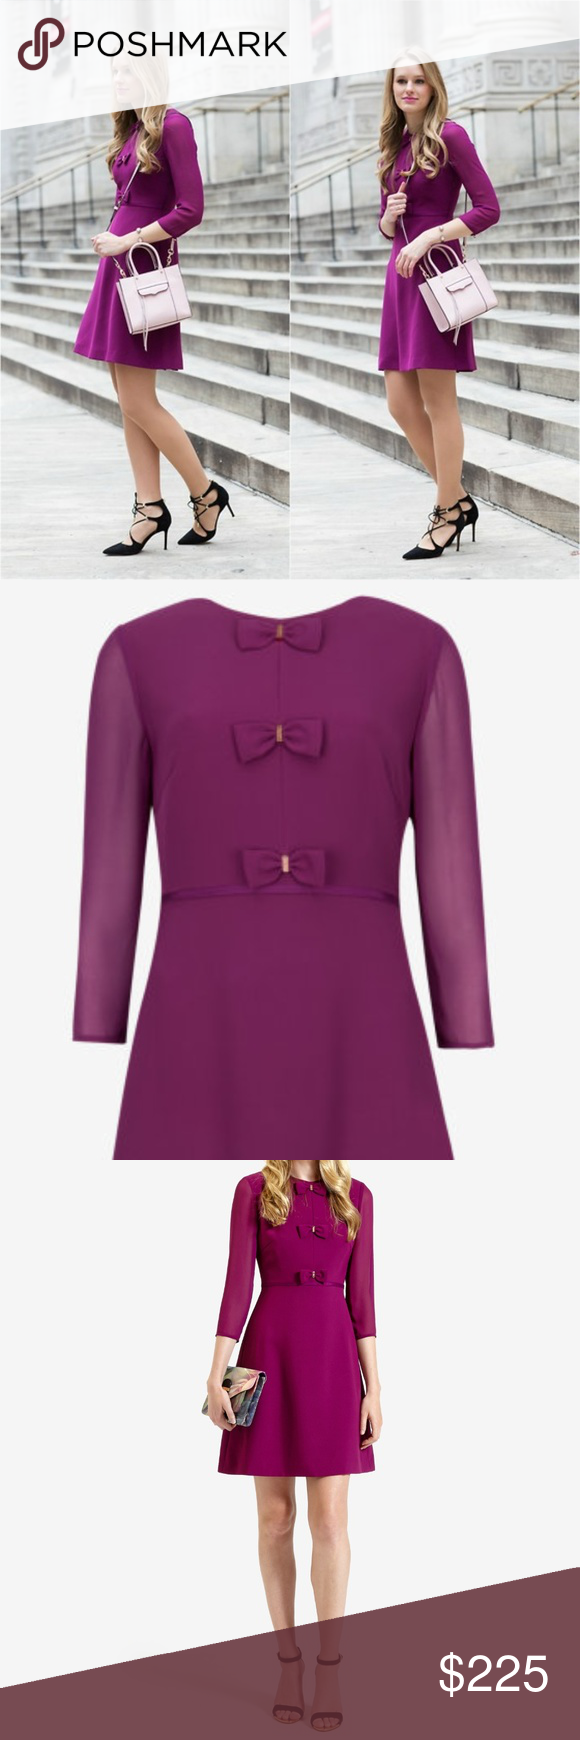 Ted Baker Bow Detail Dress Quot Finna Quot Bow Detail Dress